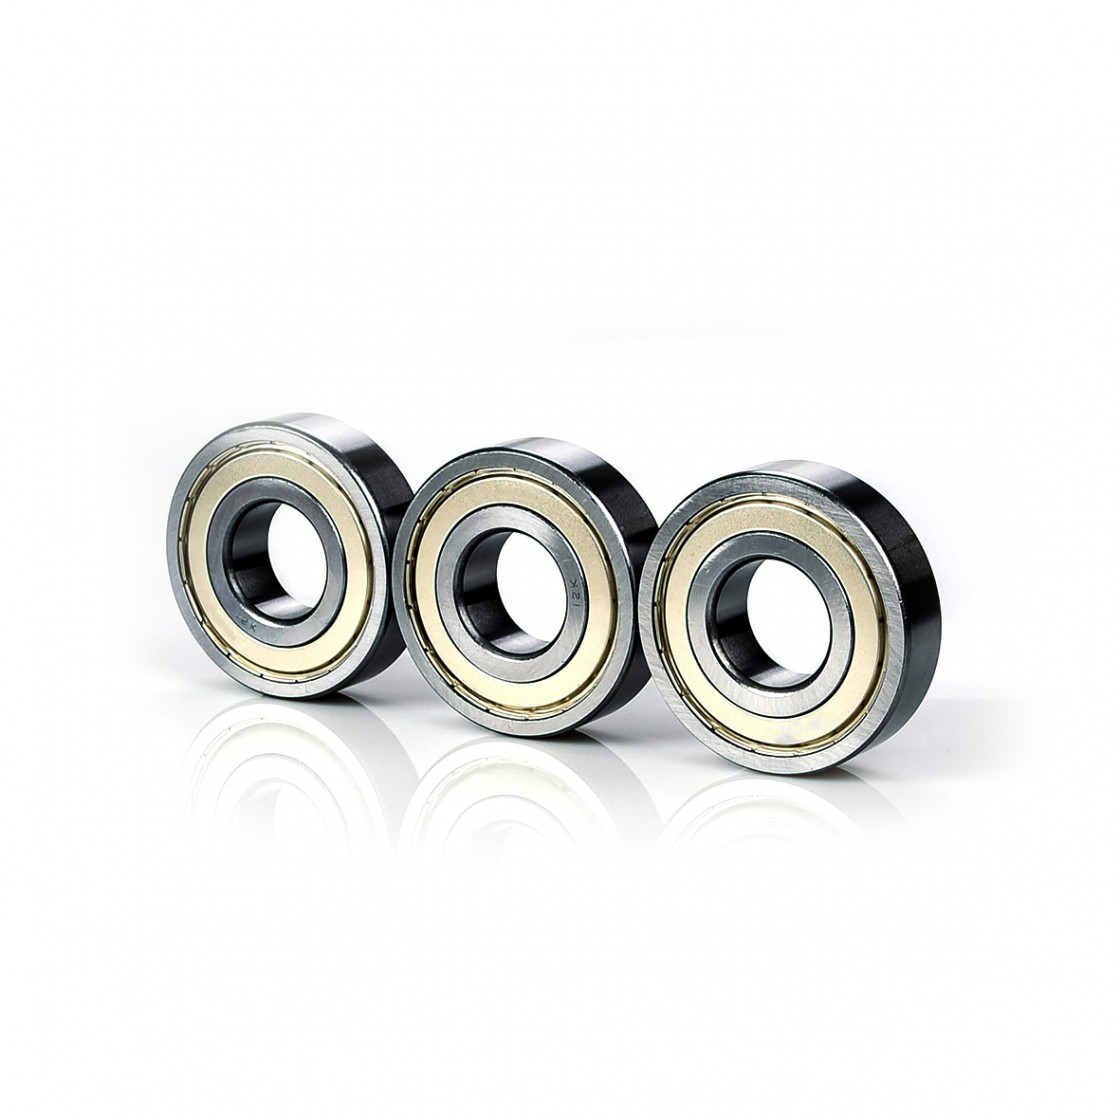 Koyo Chrome Steel 6306 Deep Groove Ball Bearing